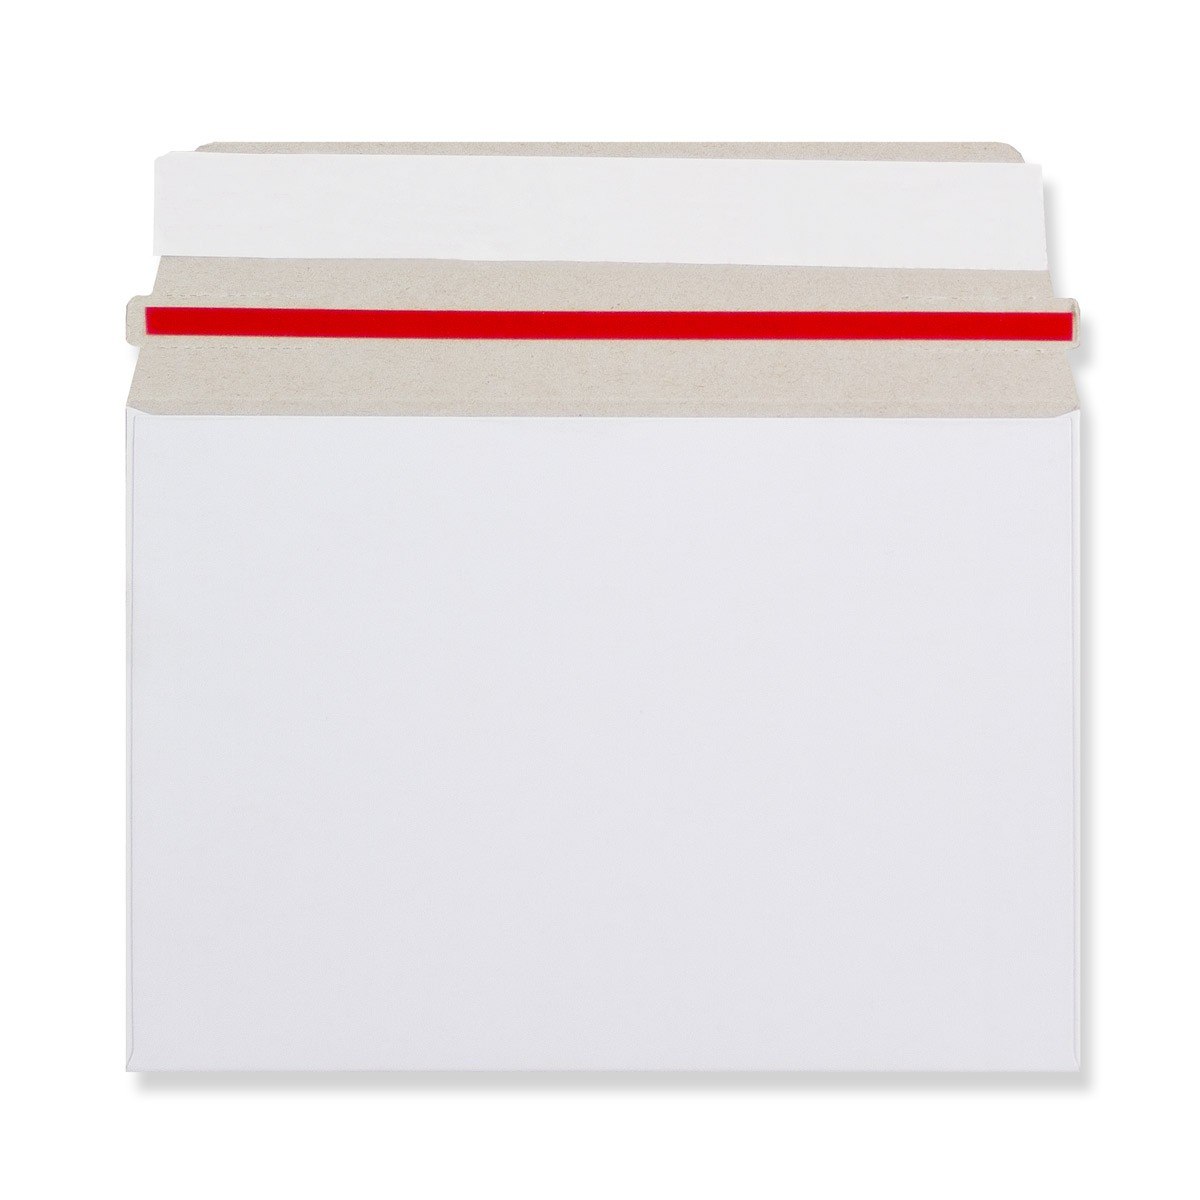 C6 WHITE ALL BOARD WALLET ENVELOPES